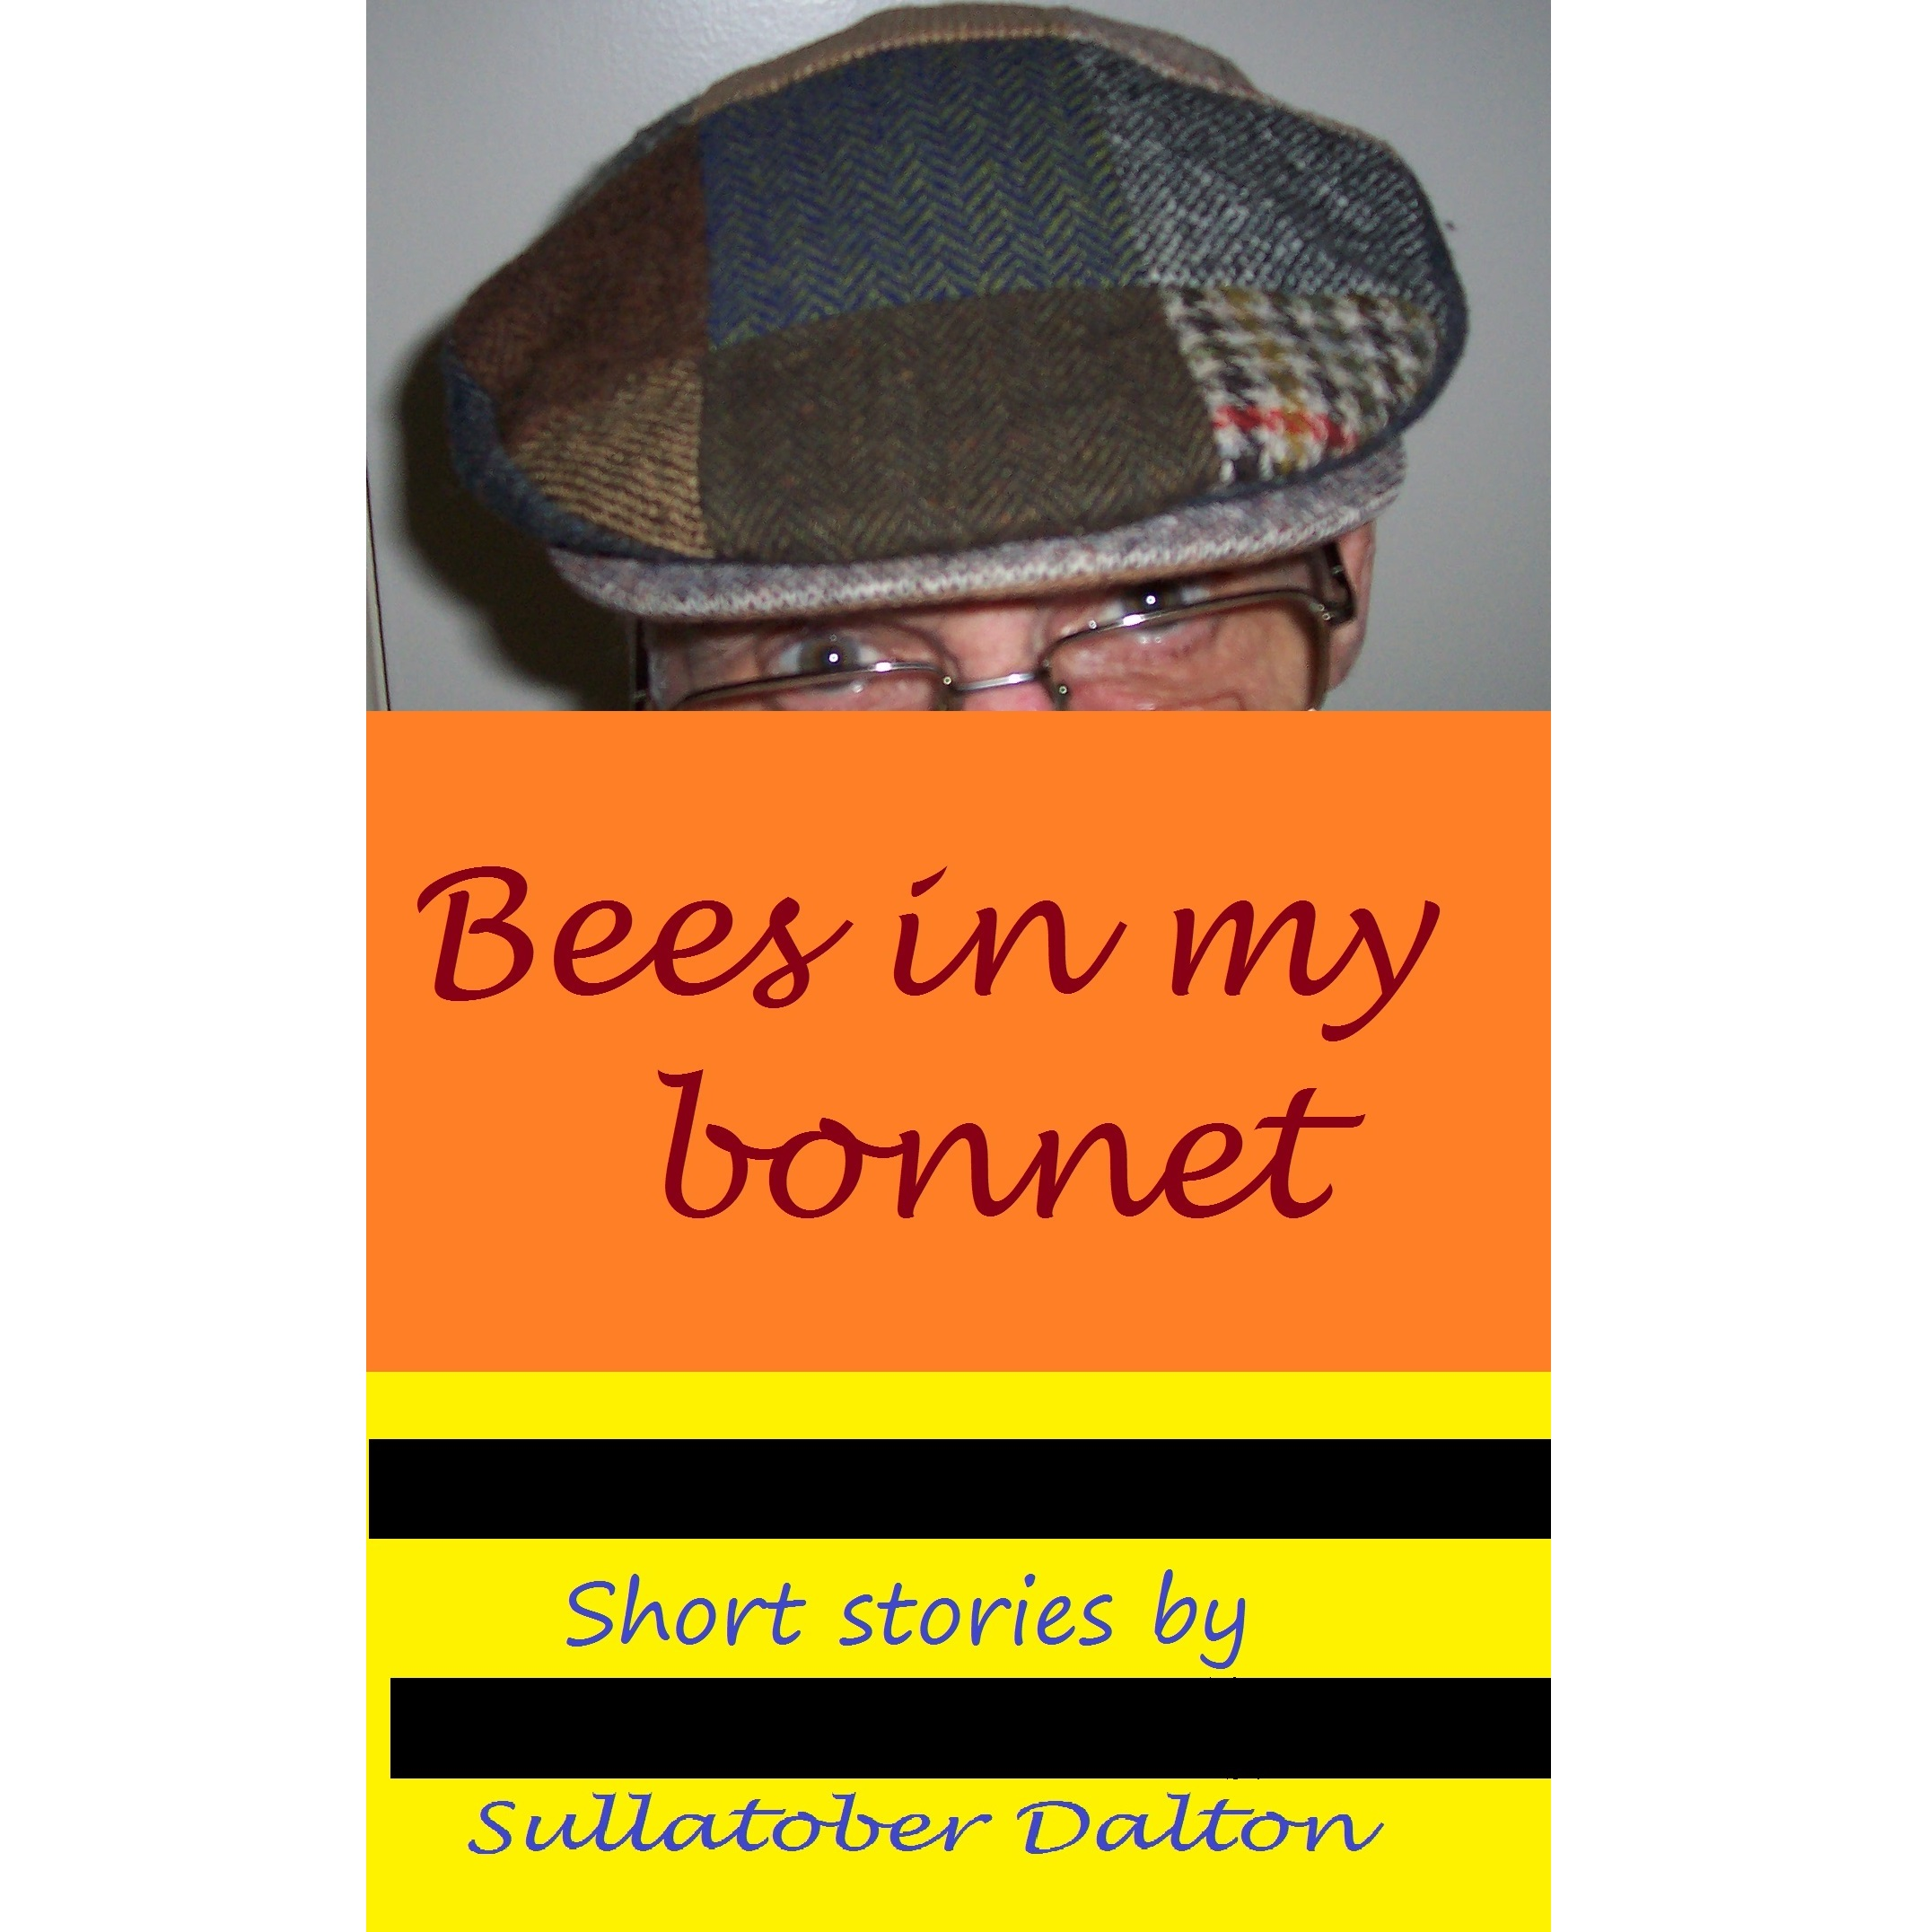 Bees in my Bonnet